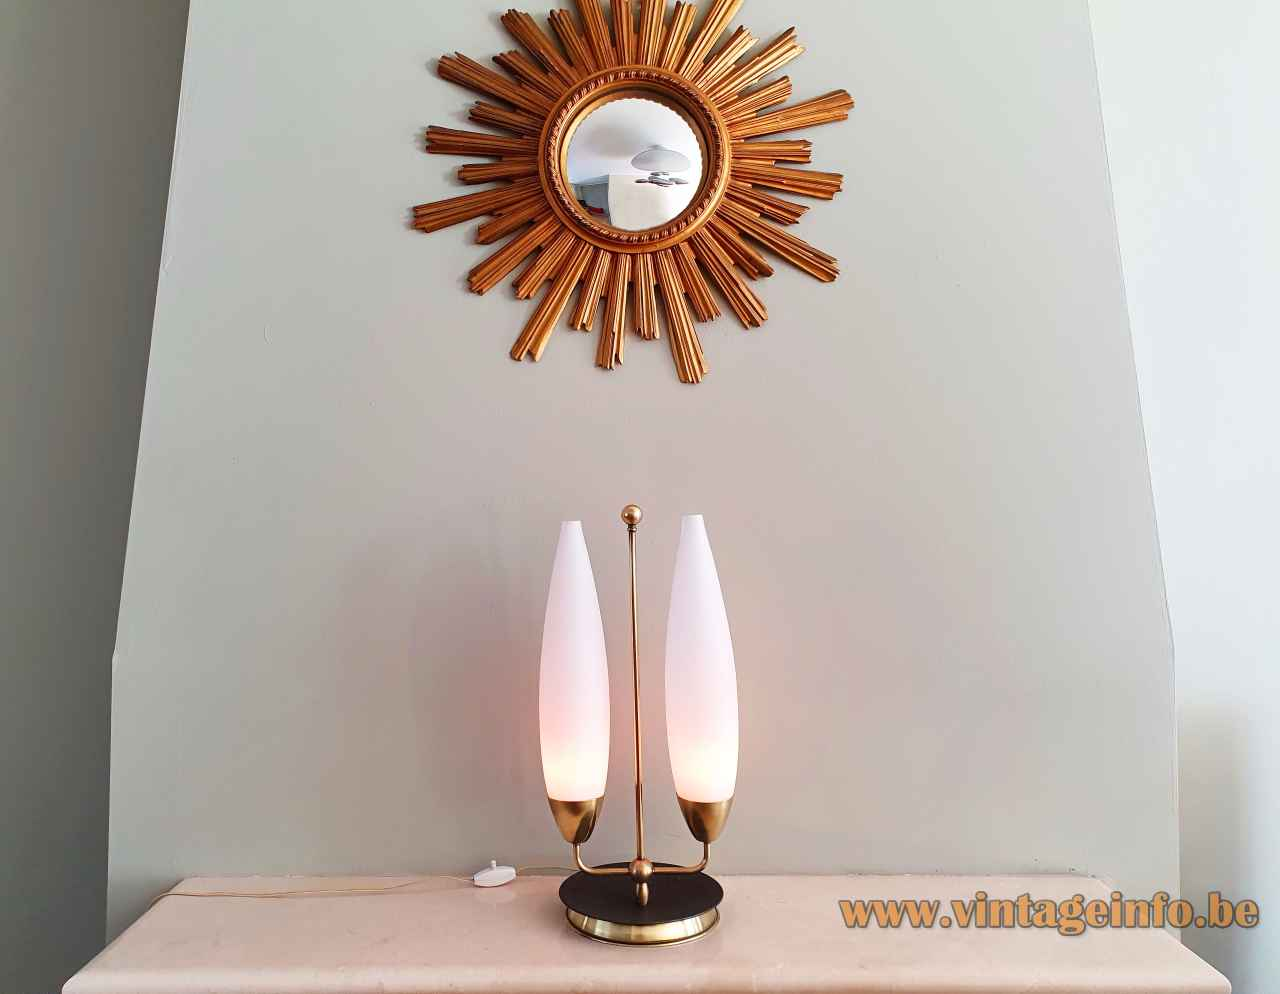 1960s convex opal glass table lamp round brass base & rod 2 white oval lampshades Massive Belgium